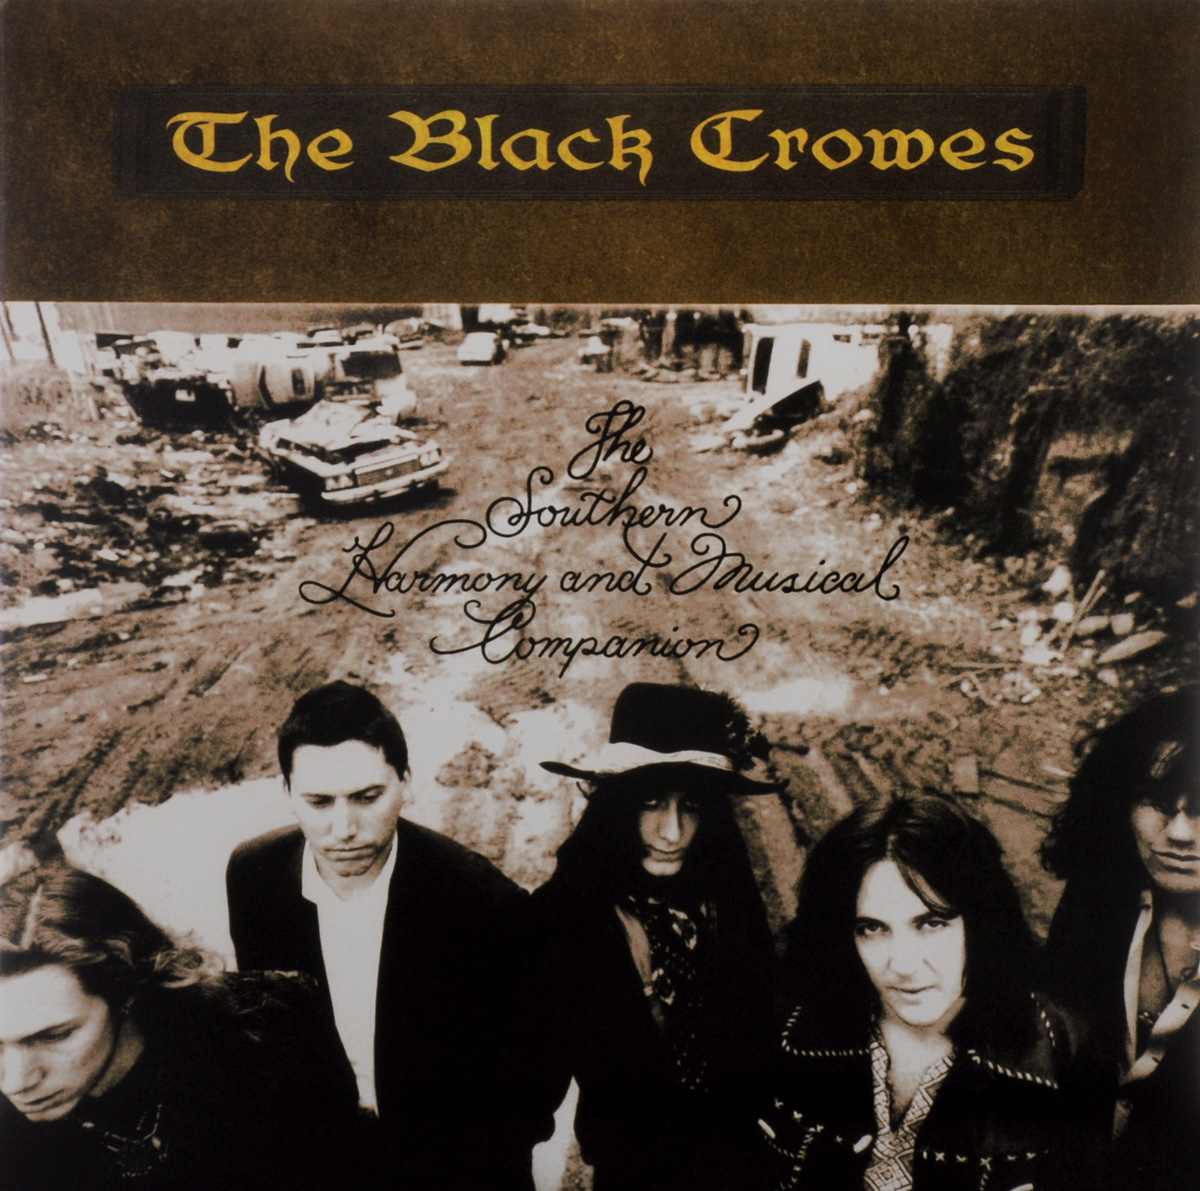 The Black Crowes The Black Crowes. The Southern Harmony And Musical Companion (2 LP) the giver